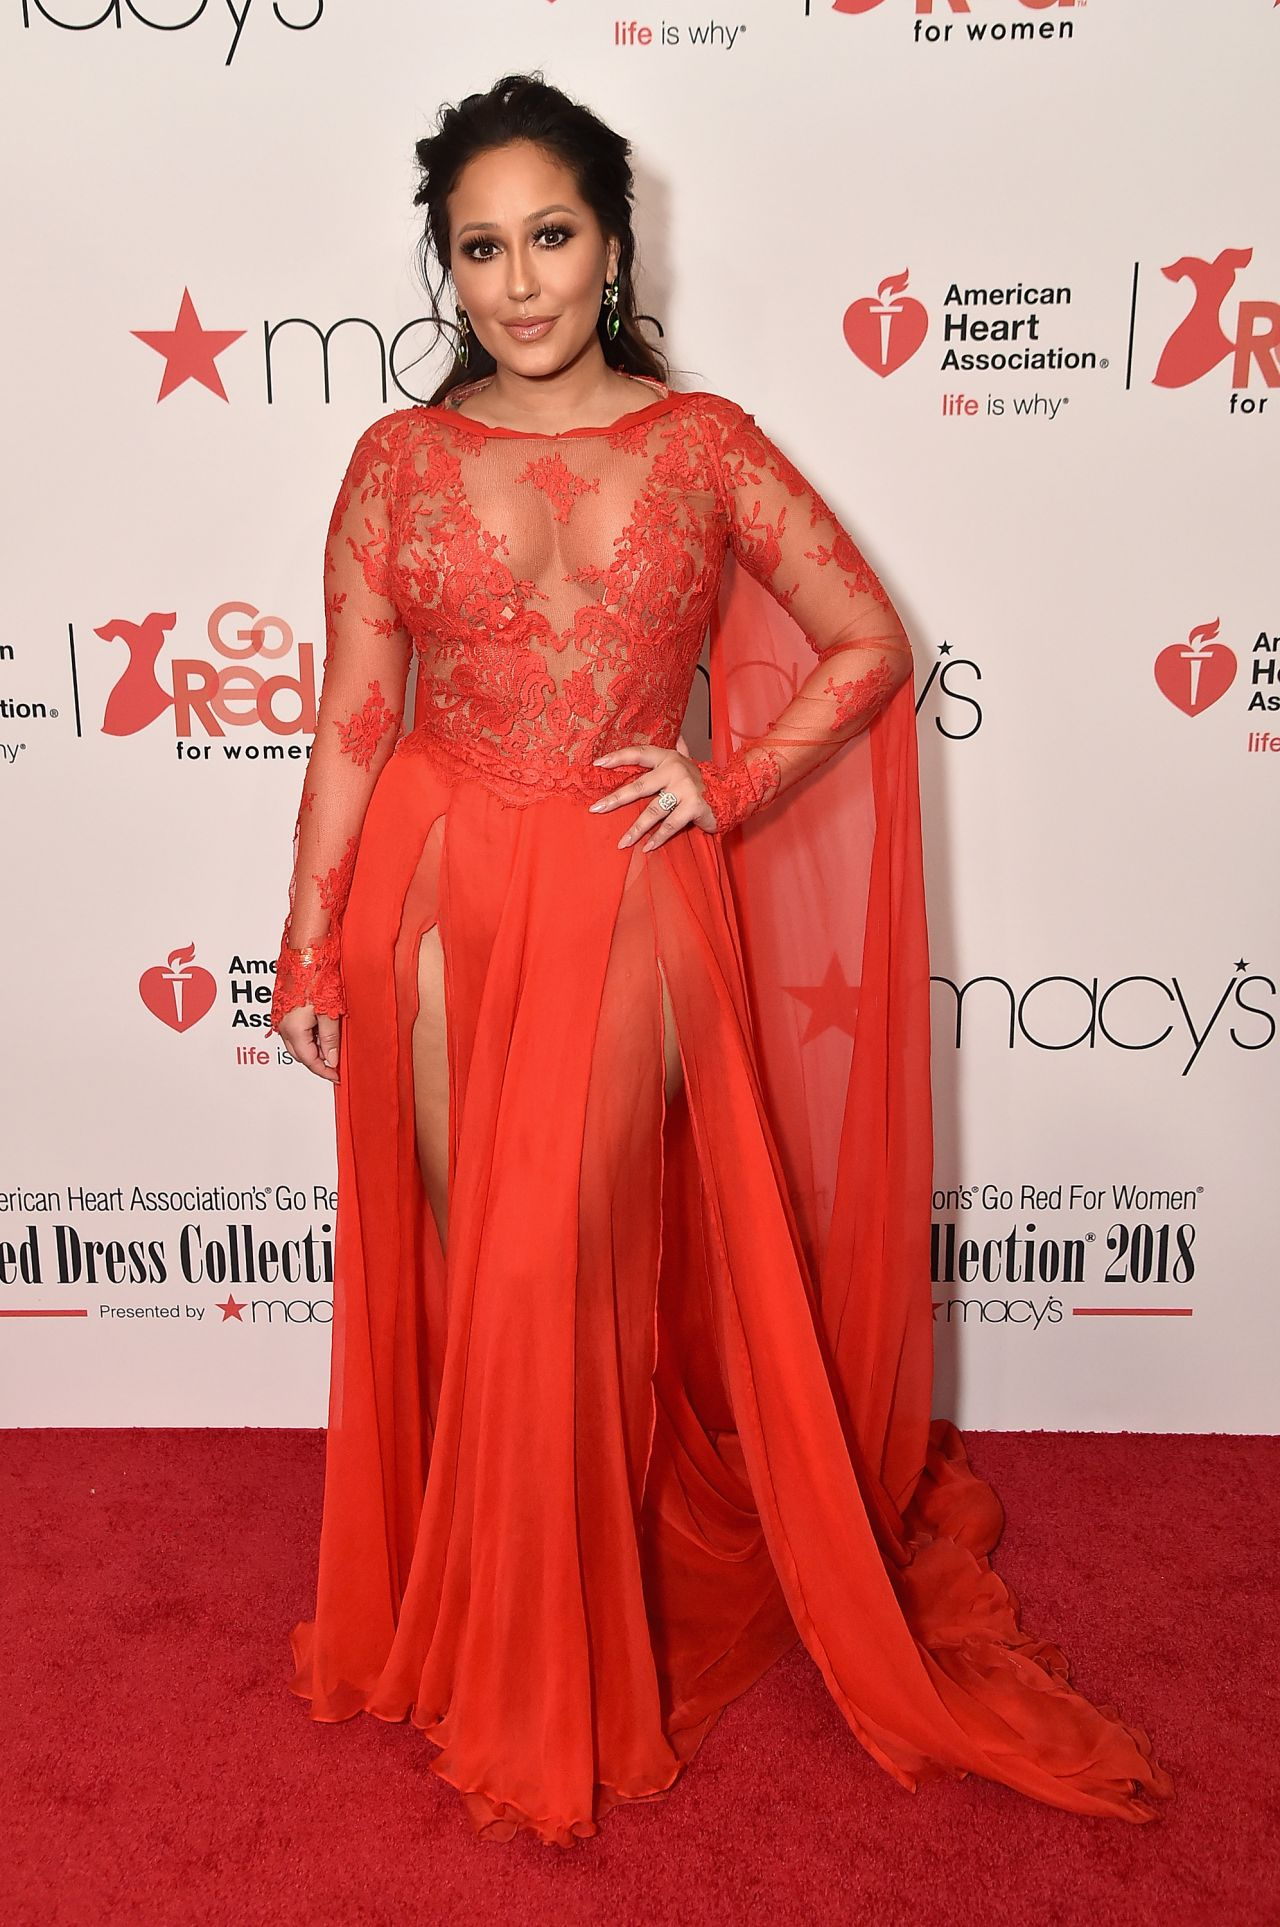 Adrienne Bailon - Go Red For Women Red Dress Collection 2018 Red Dresses For Women 2018